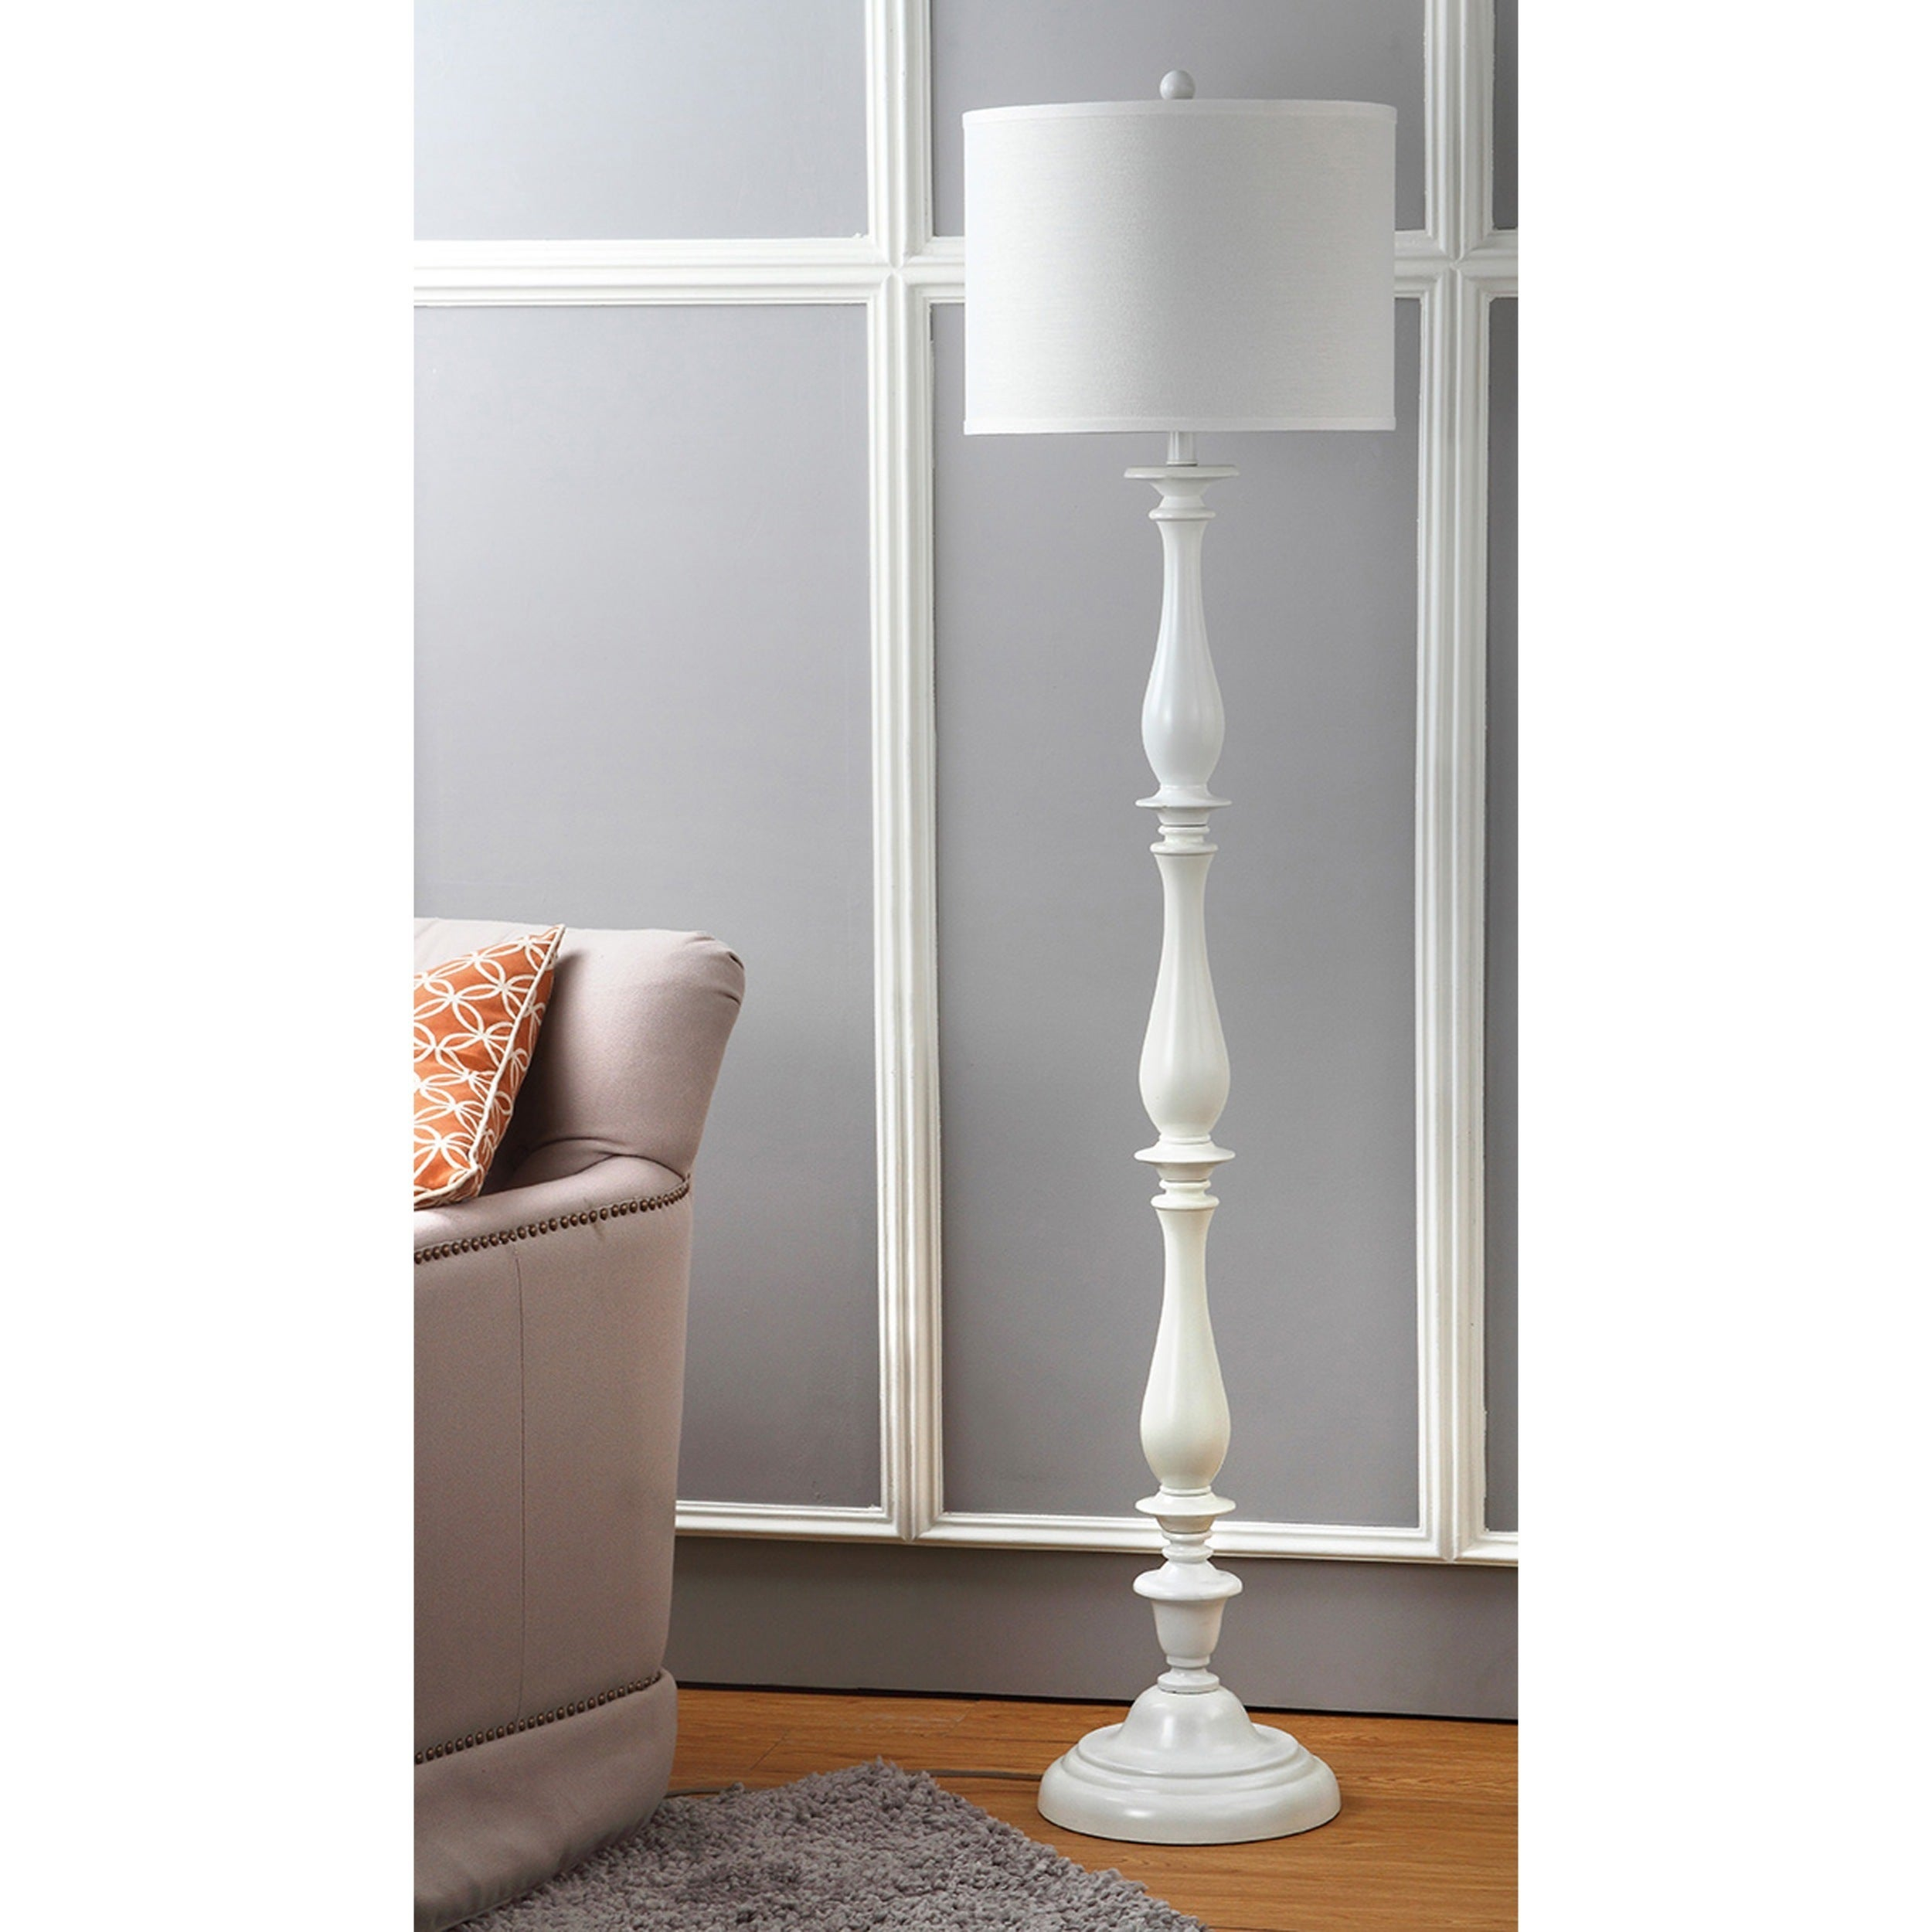 Safavieh floor lamps find great lamps lamp shades deals shopping at overstock